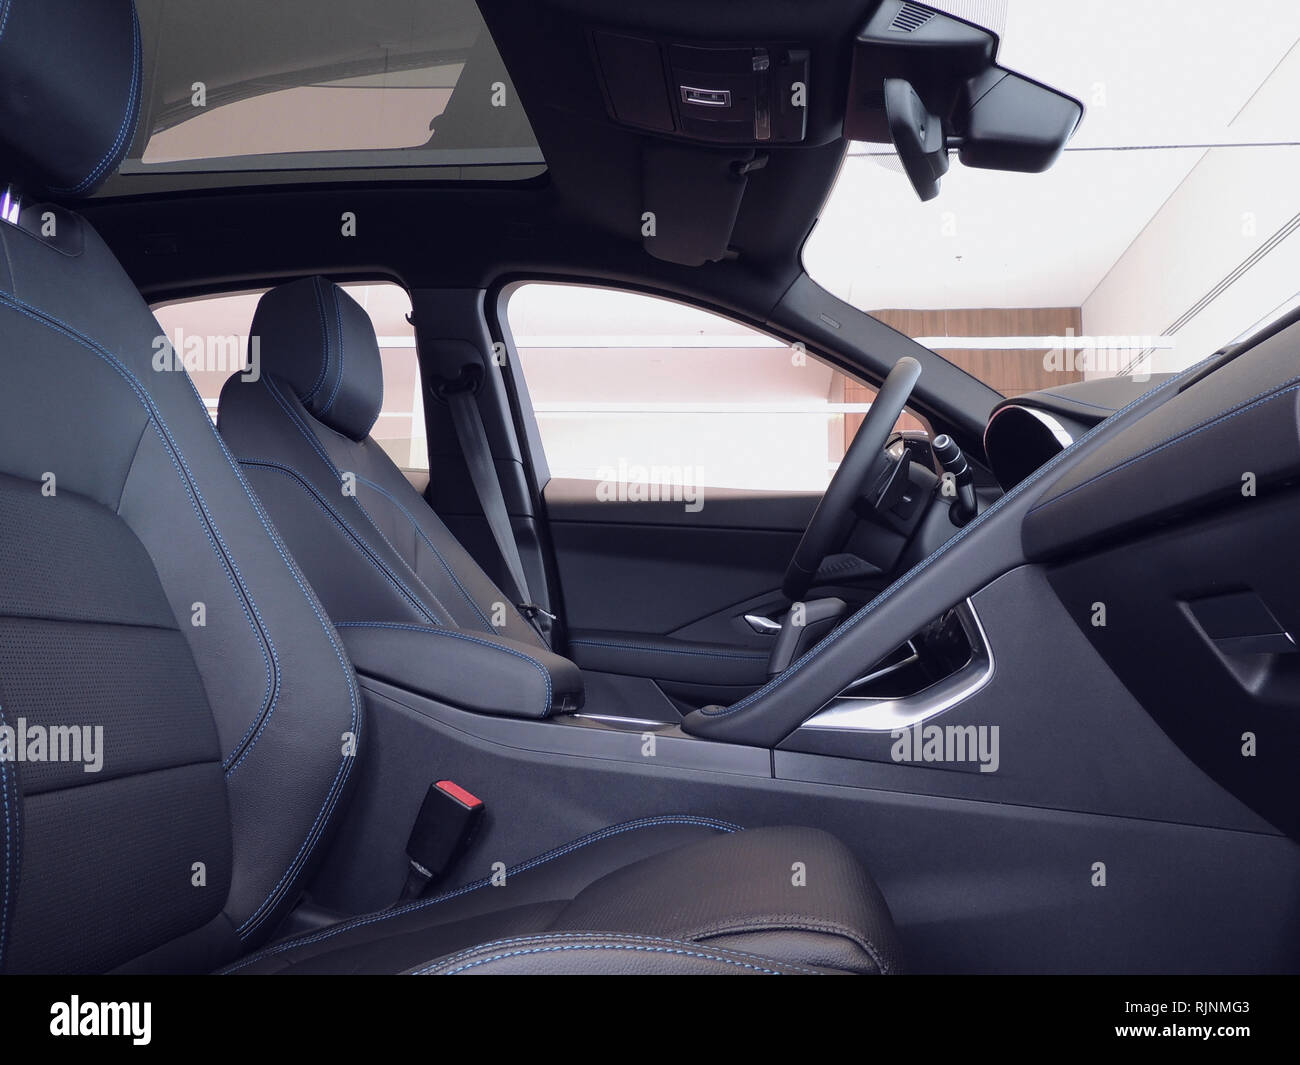 Blue Stitched Leather Of Interior Parts Inside A Car Stock Photo